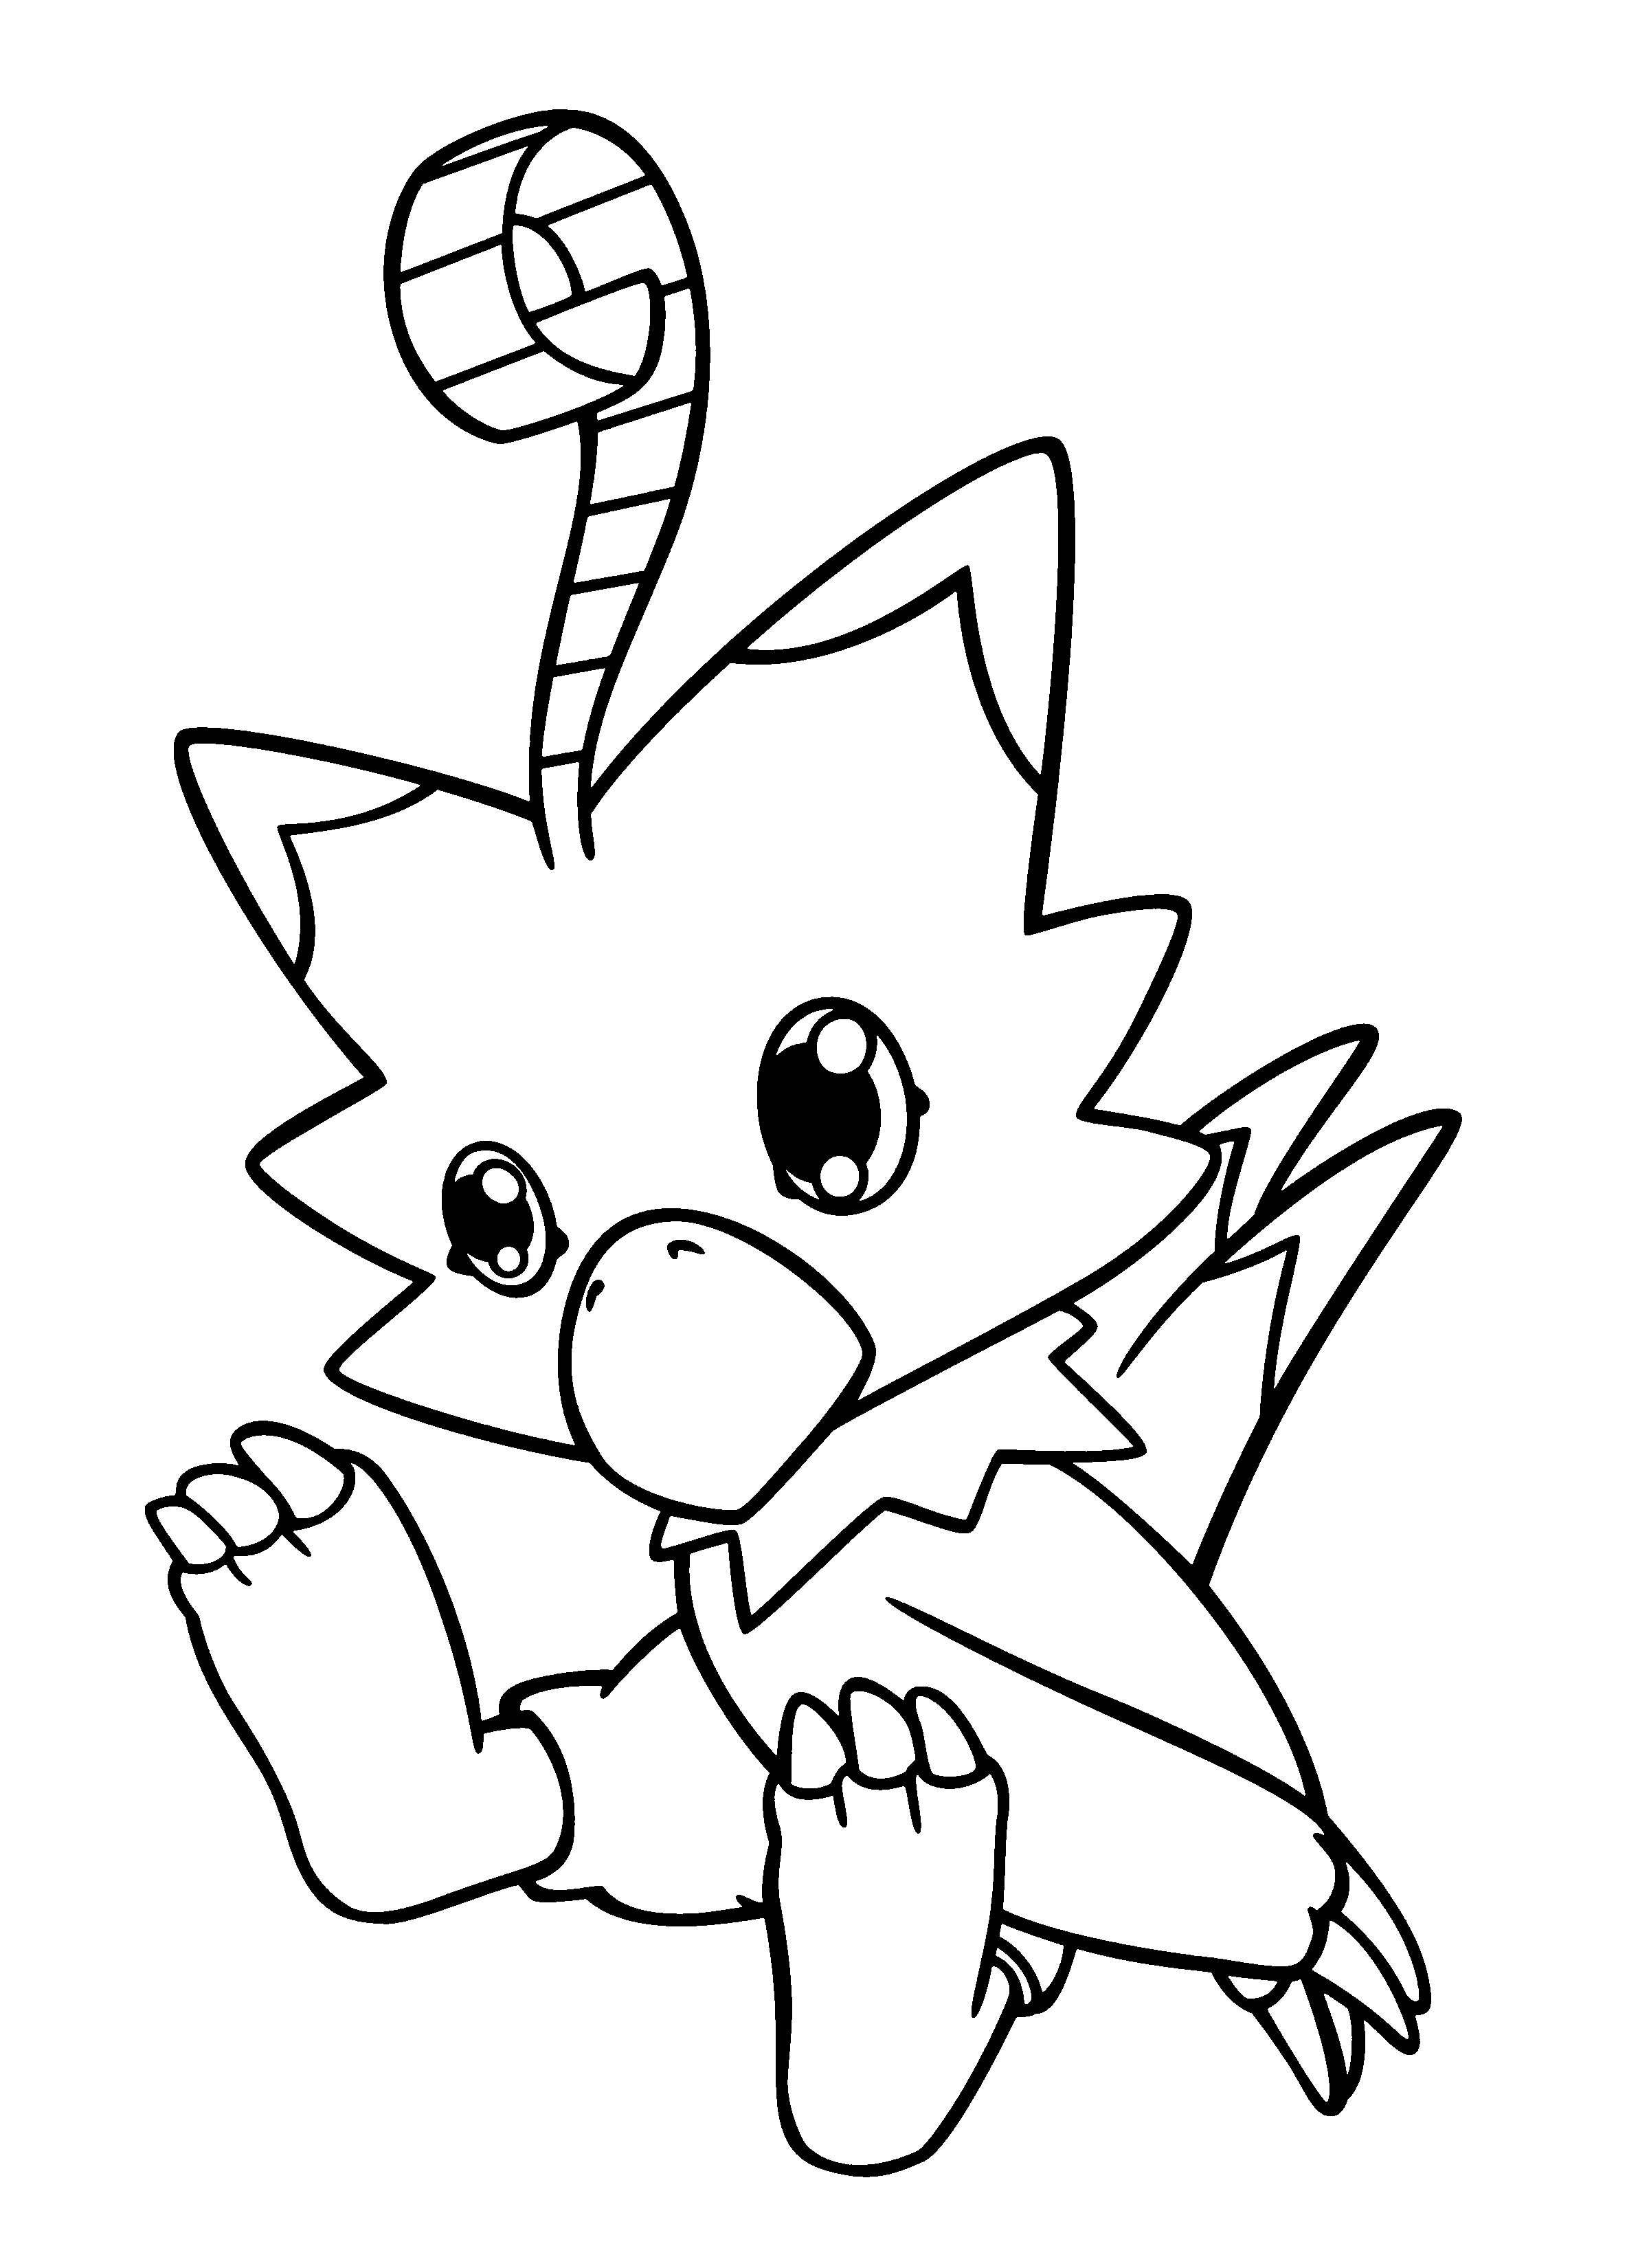 Digimon coloring pages | Coloring Digimon pages | Pinterest ...